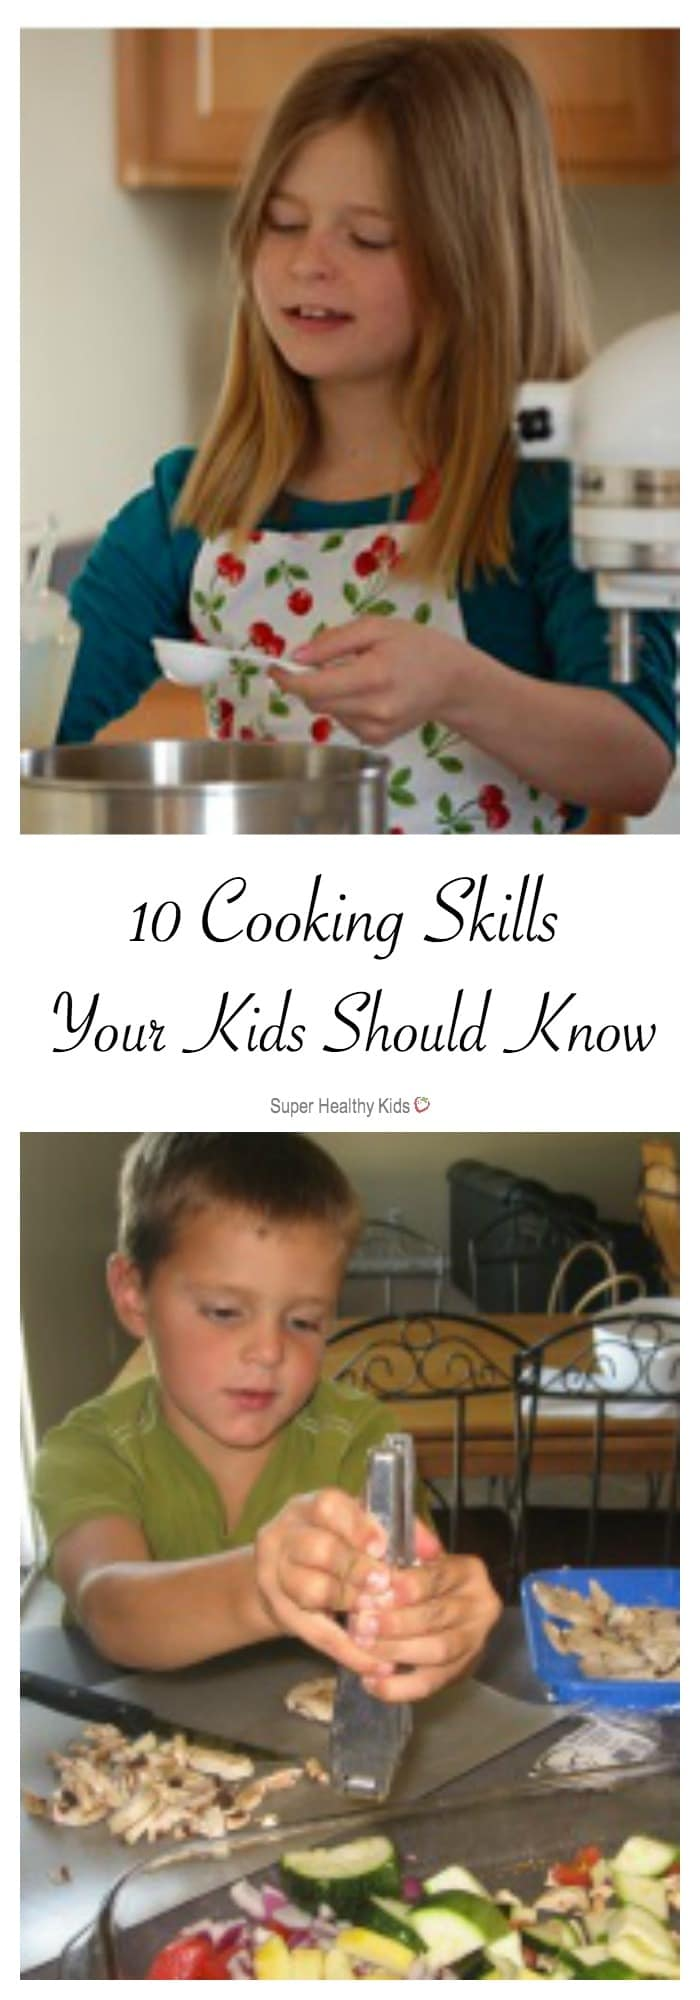 10 Cooking Skills Your Kids Should Know. Do your kids know how to do these 10 things in the kitchen? http://www.superhealthykids.com/10-cooking-skills-your-kids-should-know/